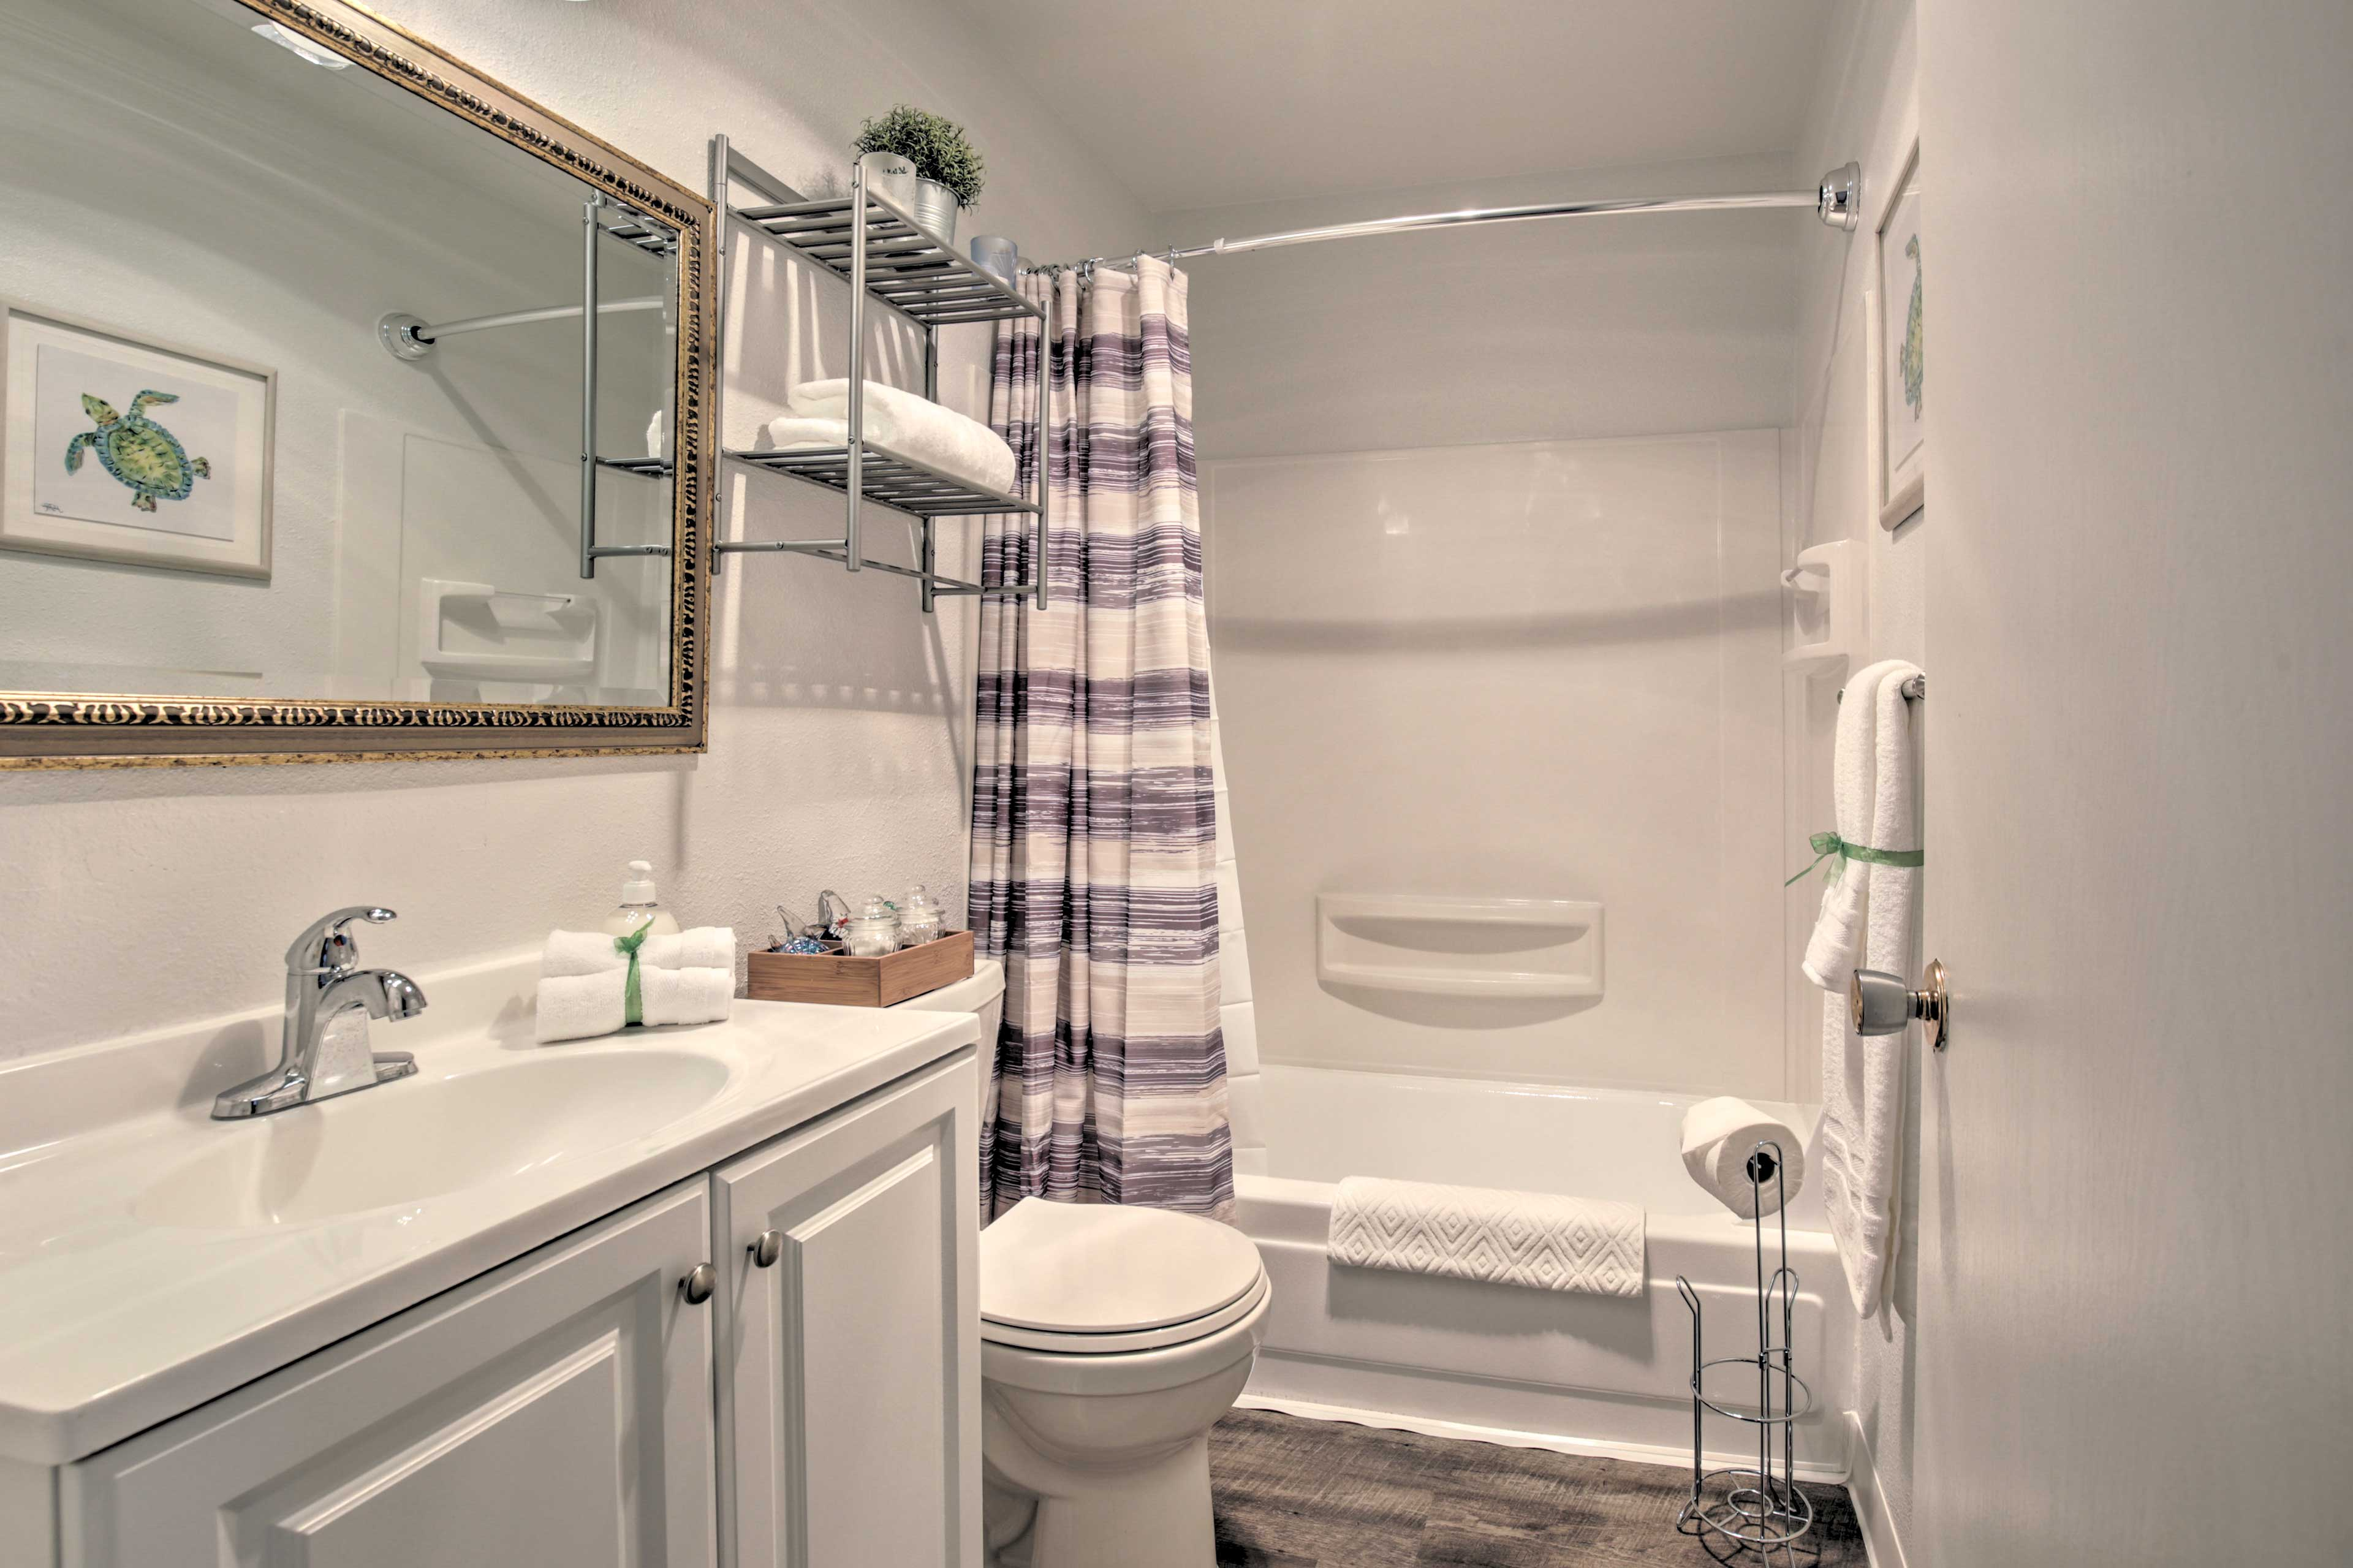 The bathroom includes a shower/tub combo & complimentary toiletries.